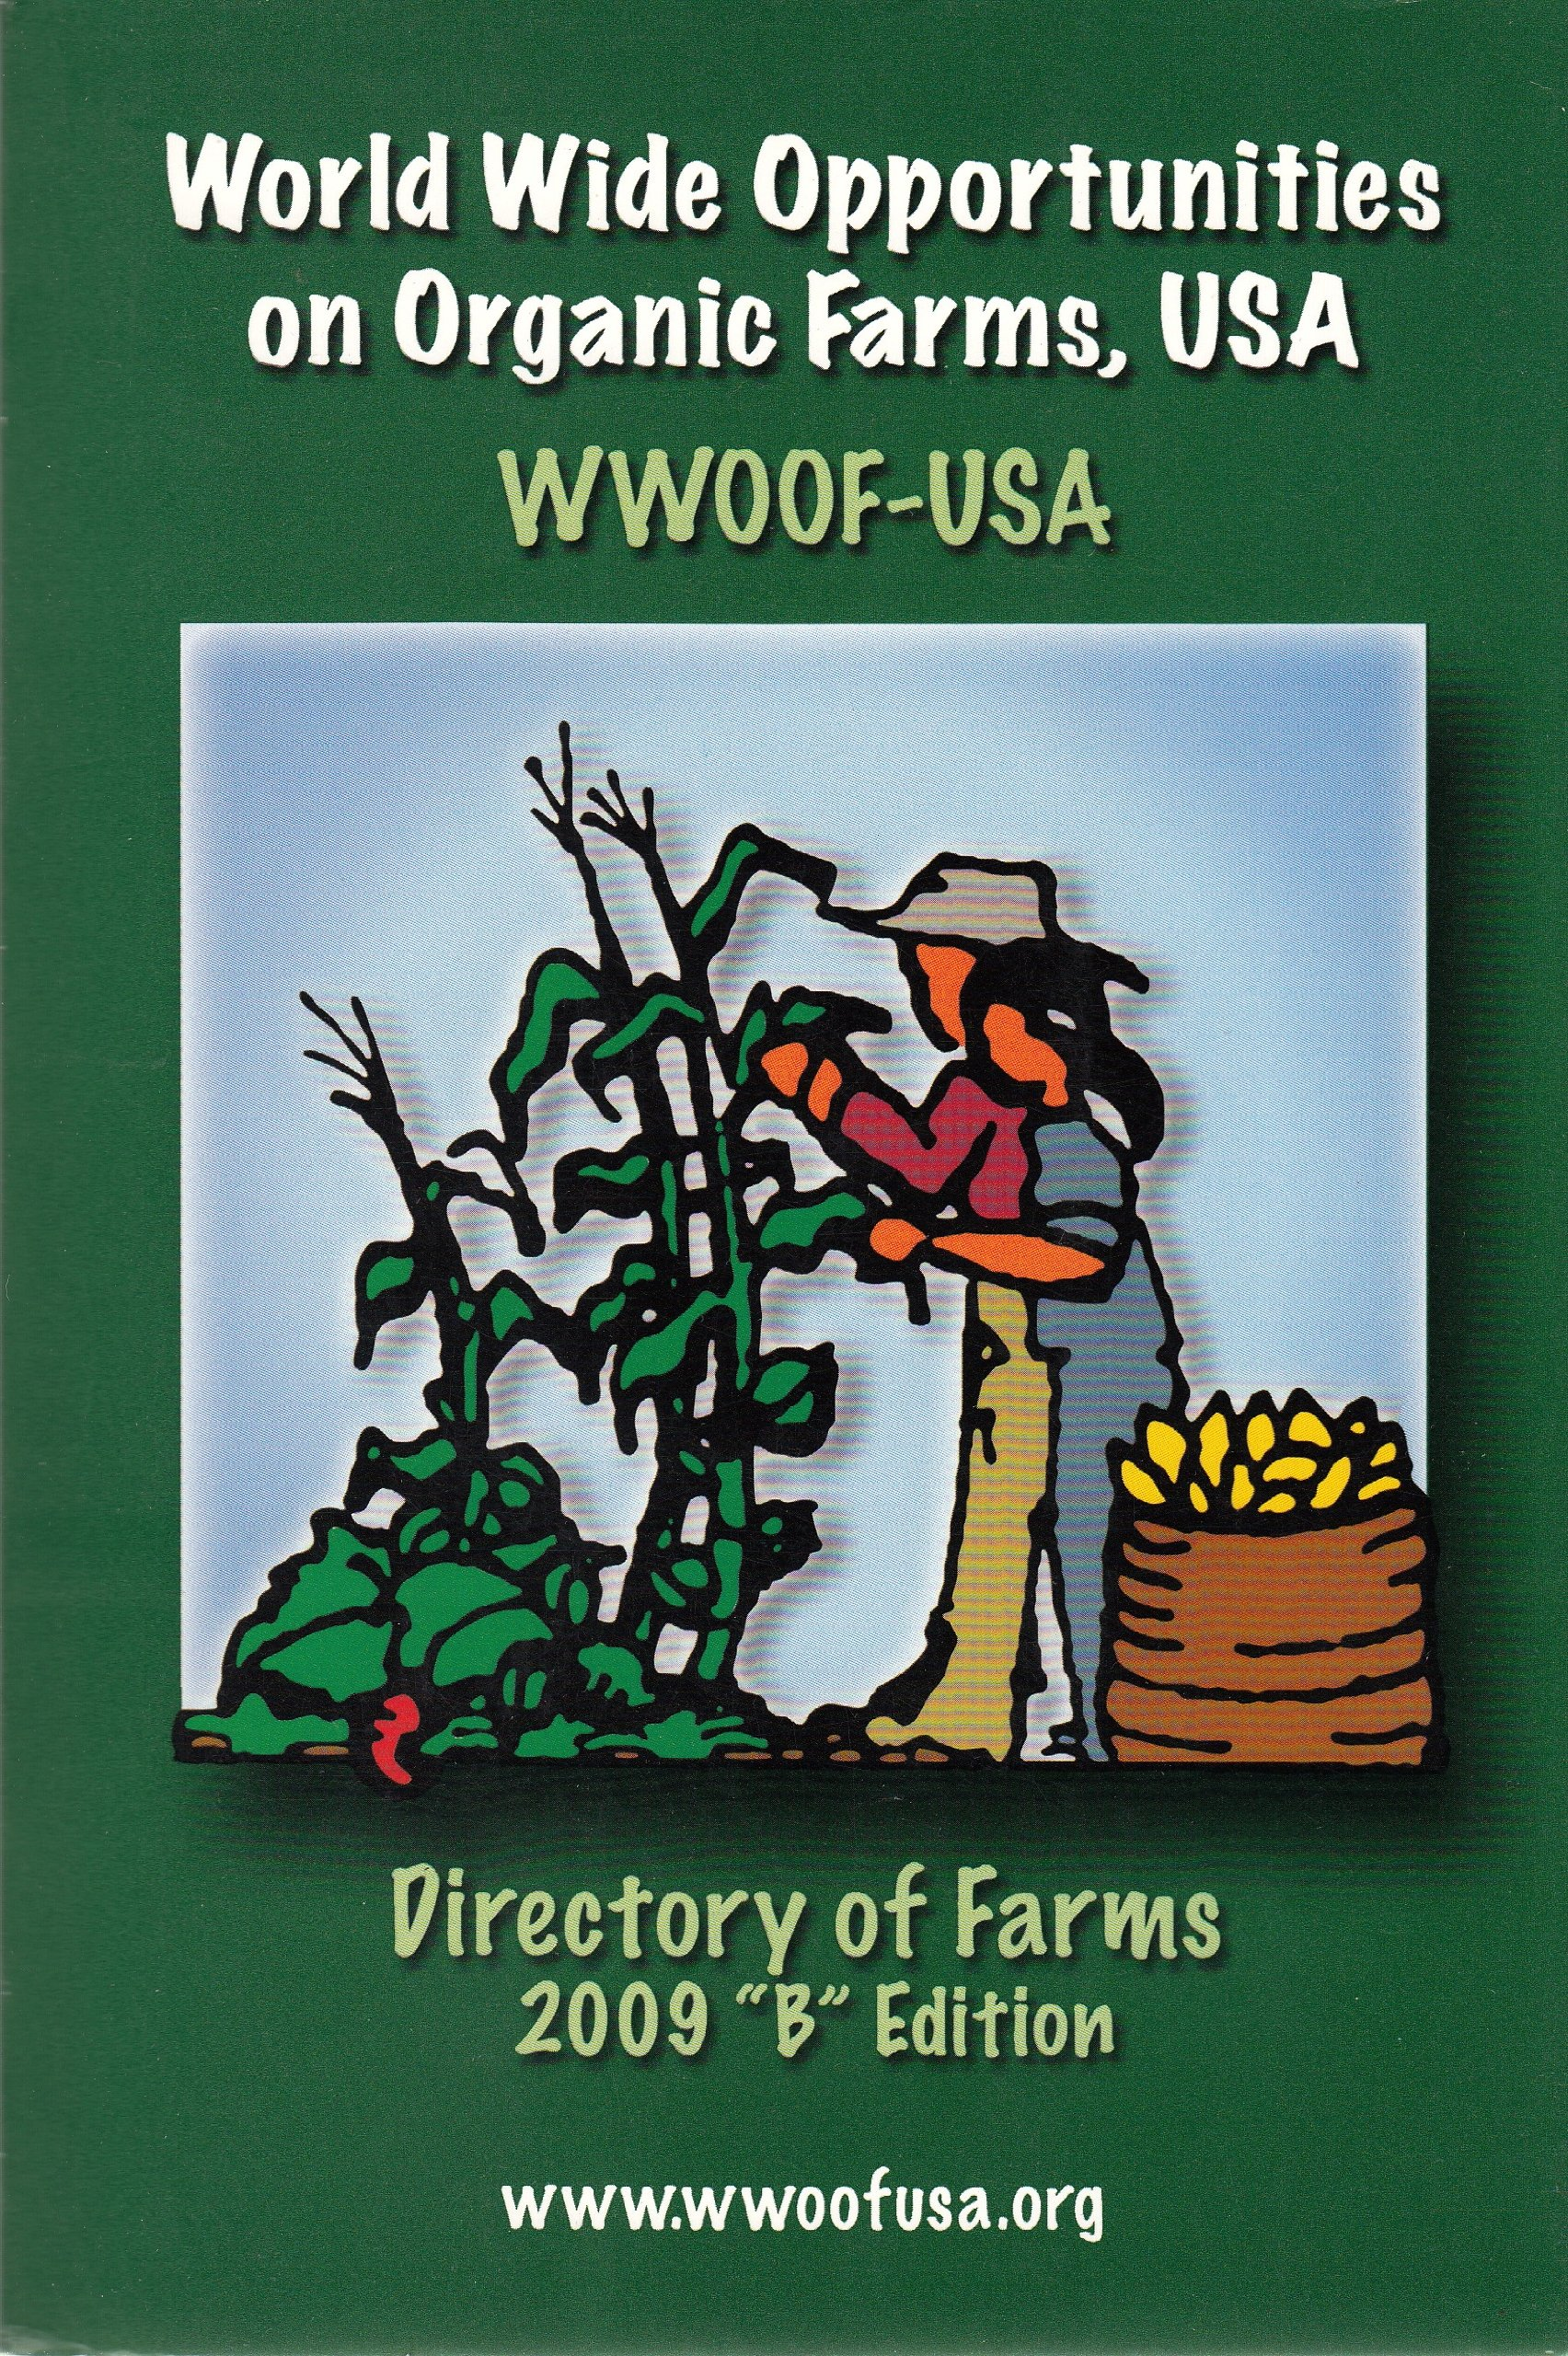 "World Wide Opportunities on Organic Farms, USA - WWOOF-USA / Directory of Farms 2009 ""B"" Edition, WWOOF-USA"